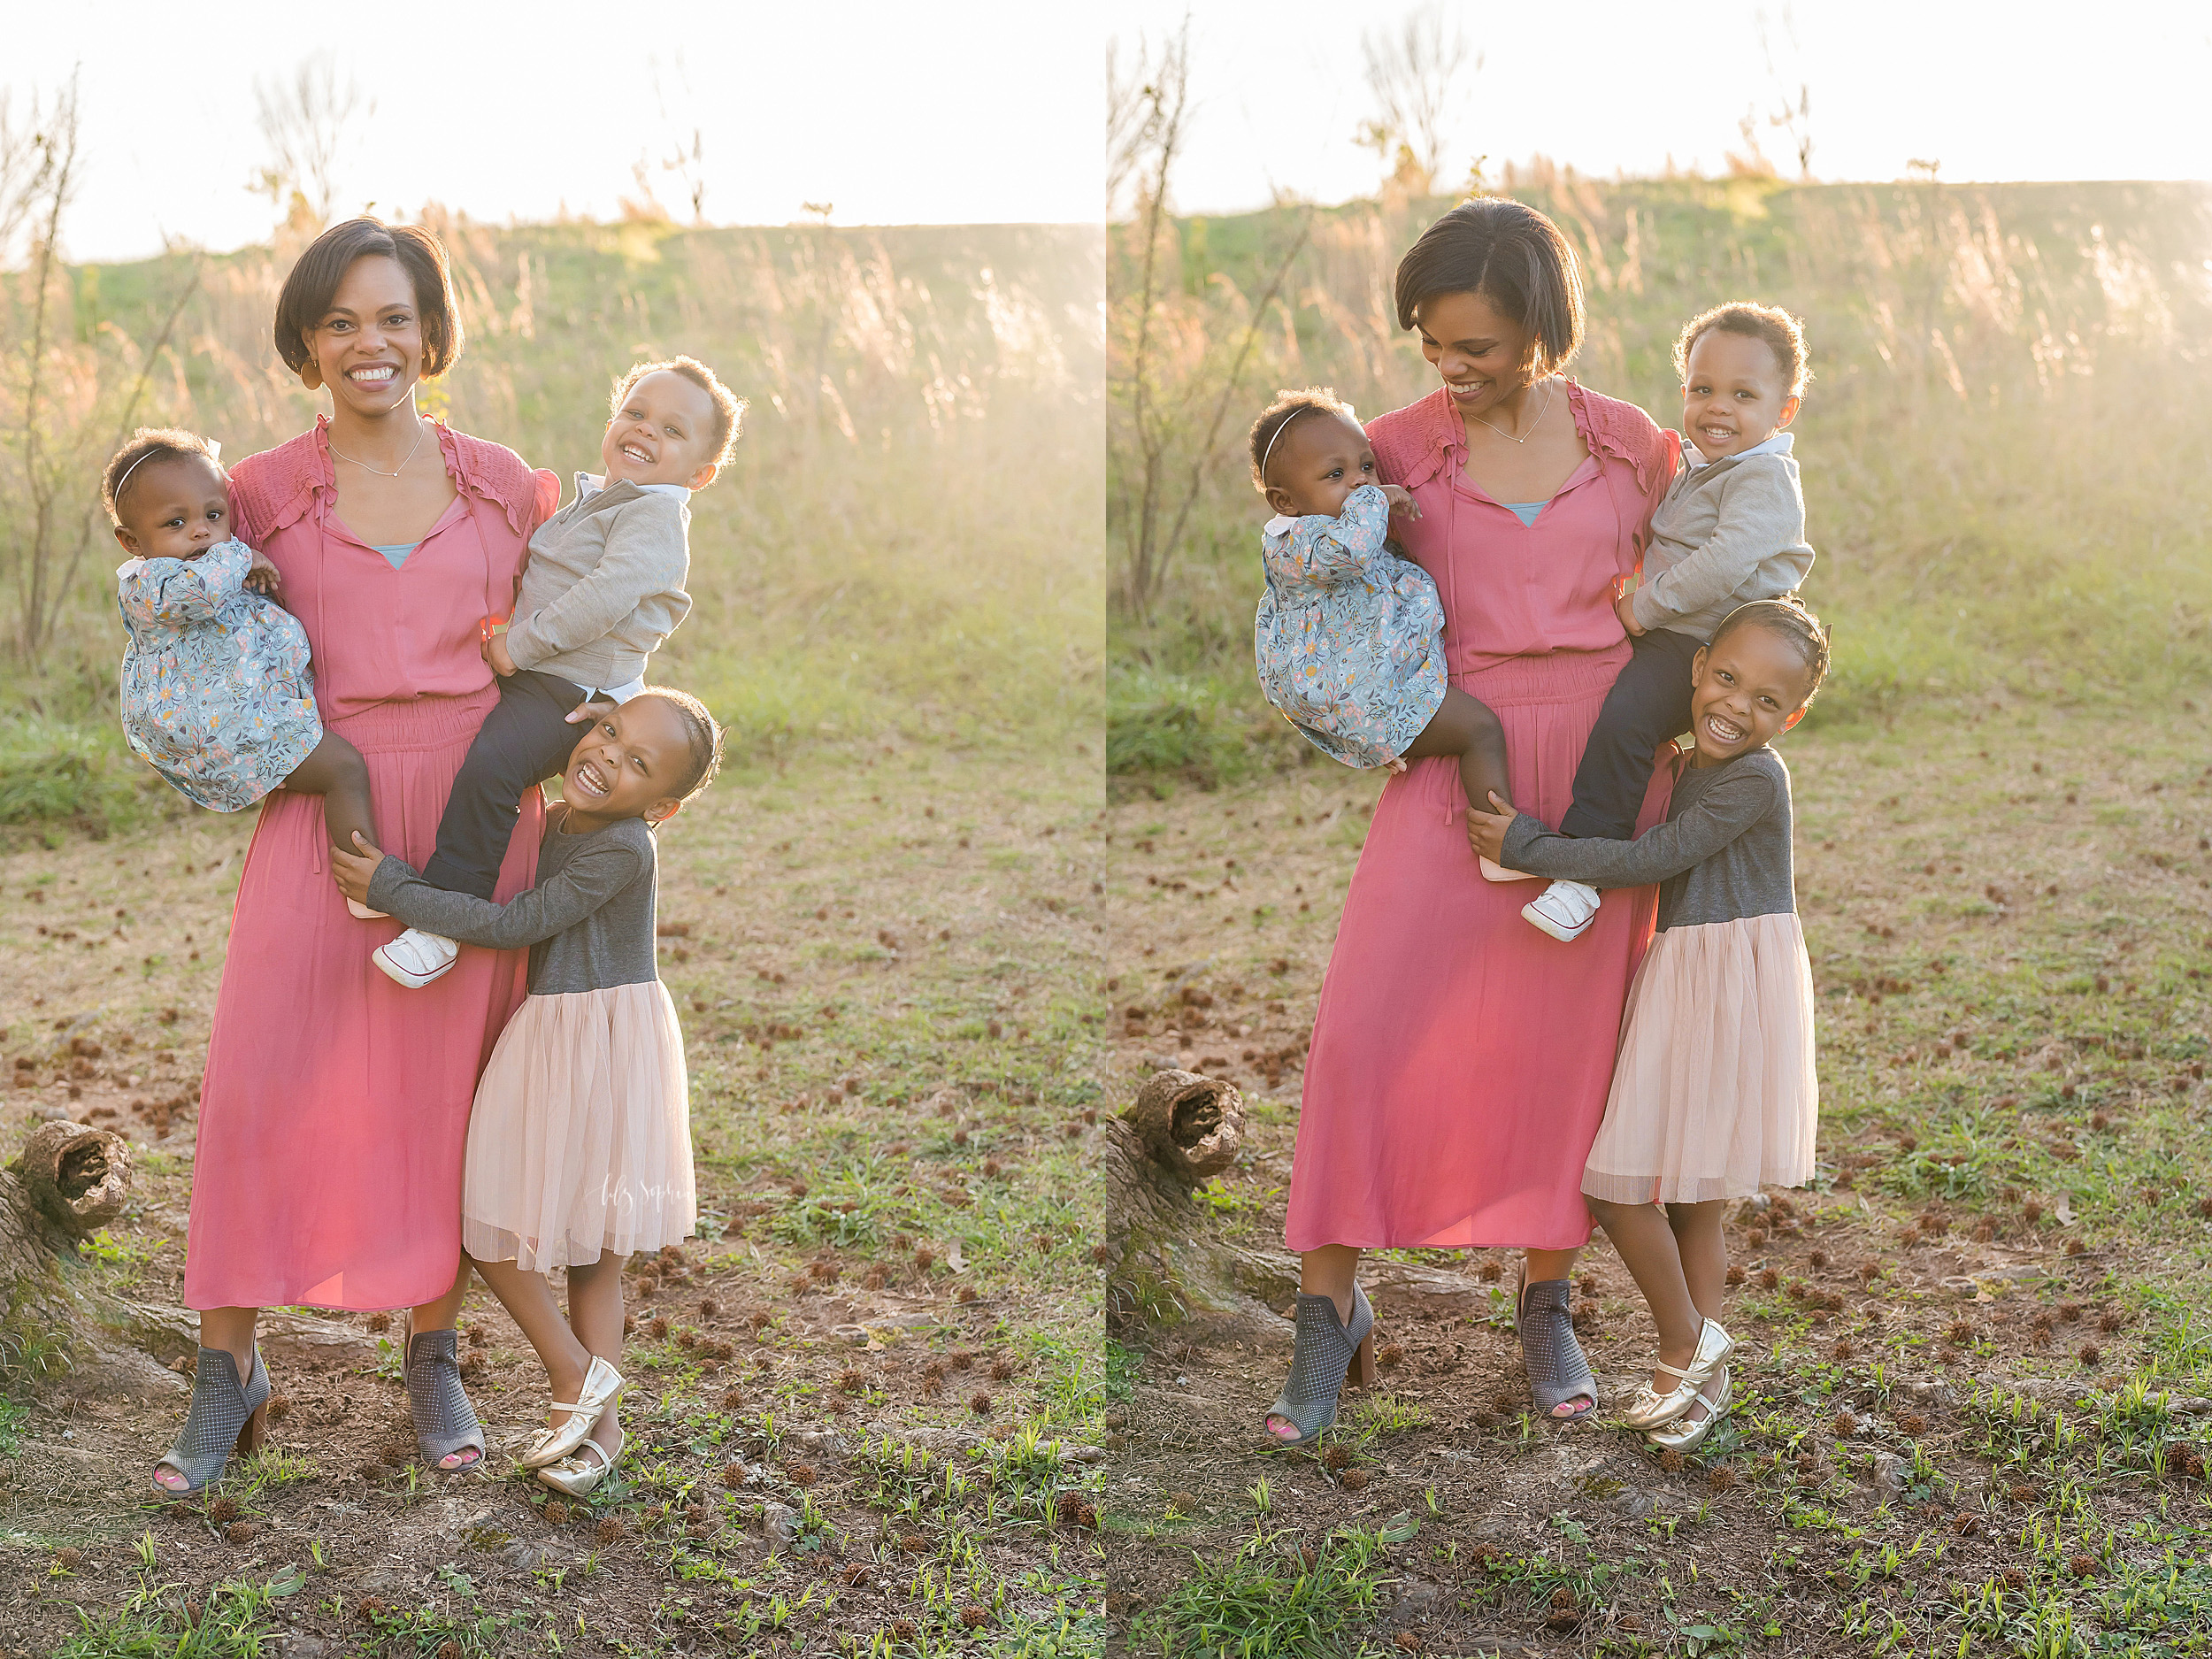 atlanta-cumming-milton-sandy-springs-buckhead-virginia-highlands-west-end-decatur-lily-sophia-photography-outdoor-sunset-field-first-birthday-cake-pop-smash-family-pictures_1289.jpg